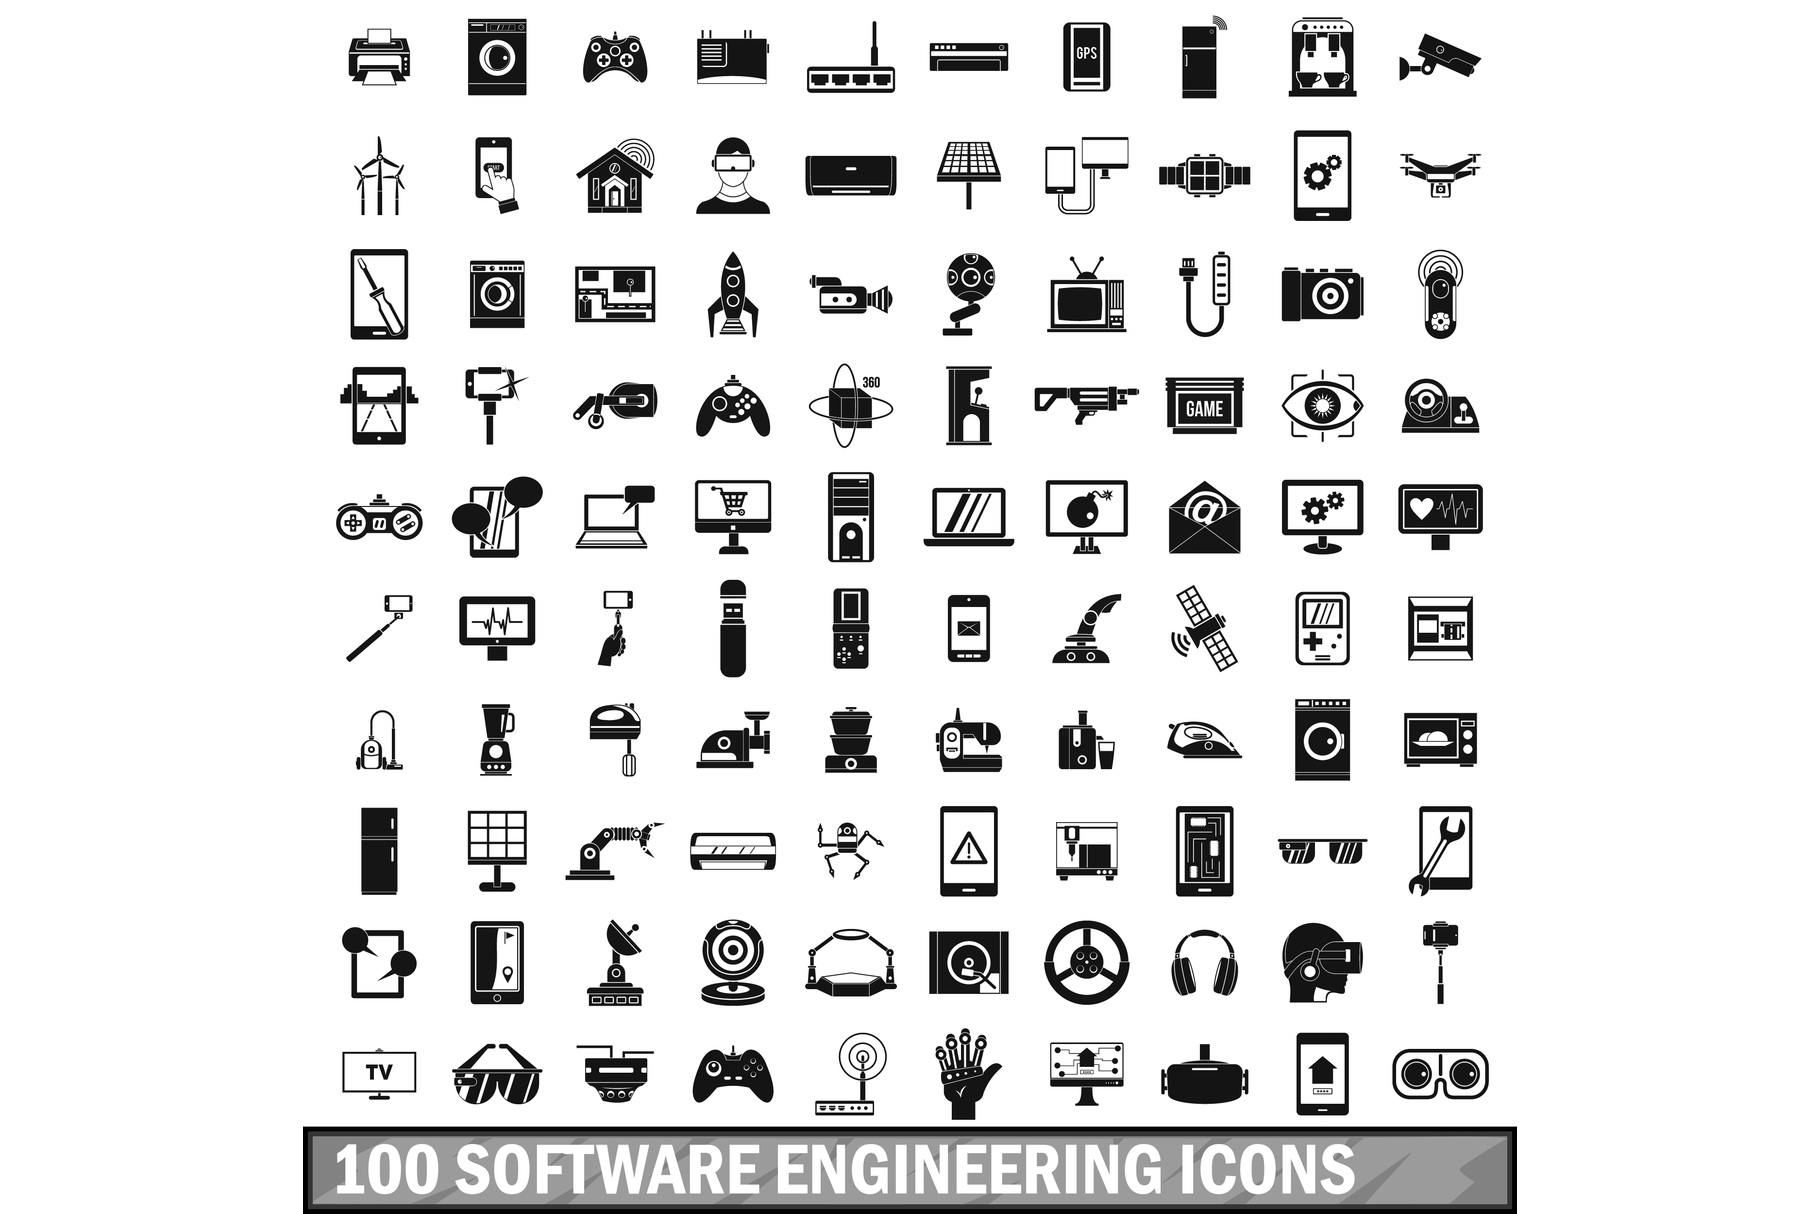 100 software engineering icons set, simple style example image 1